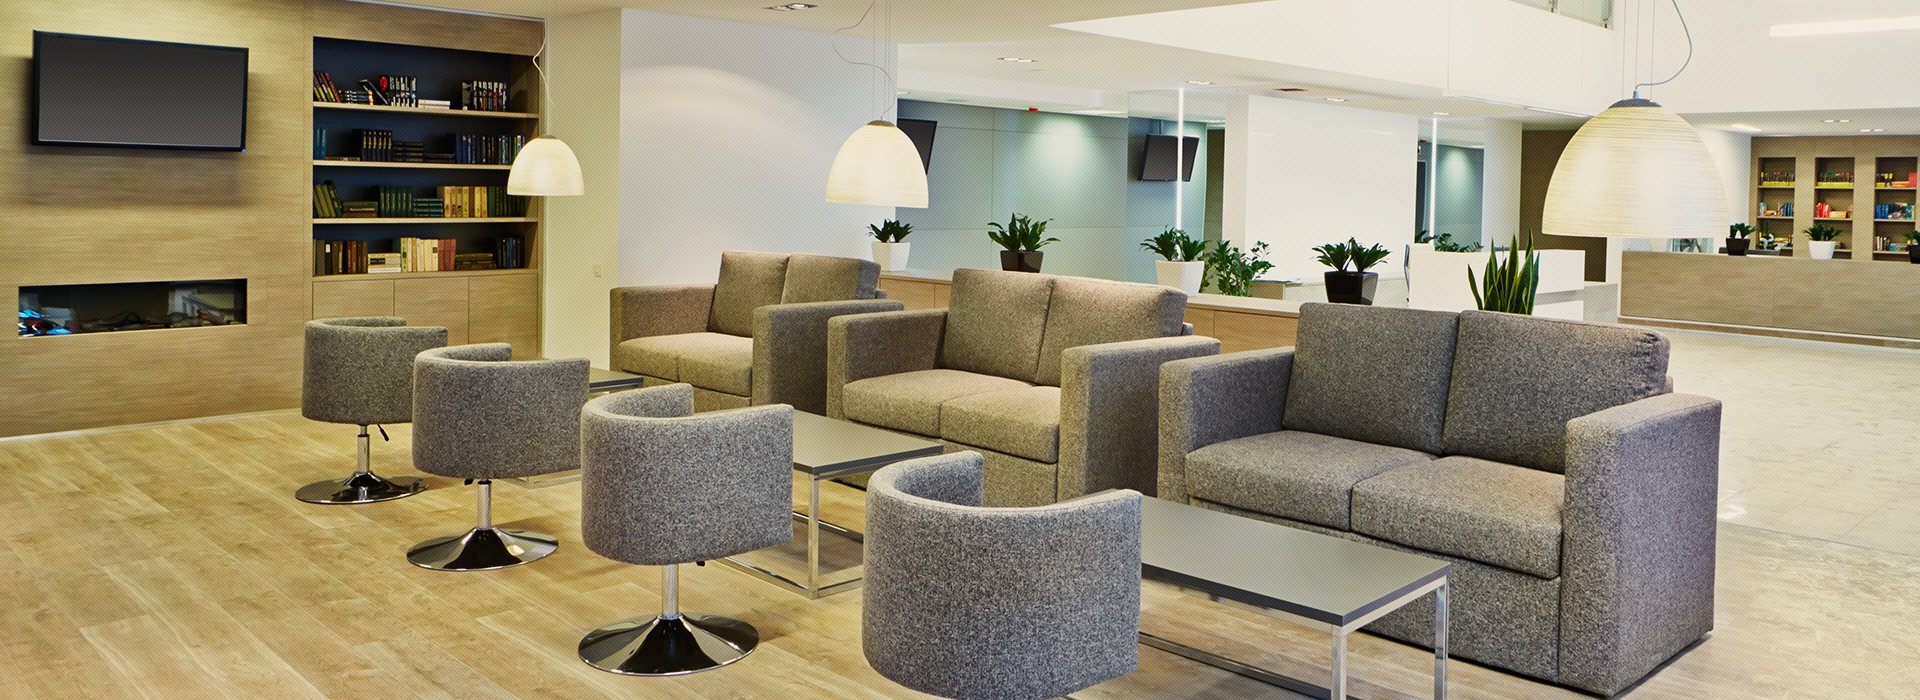 An office space with a large seating area made of grey fabrics